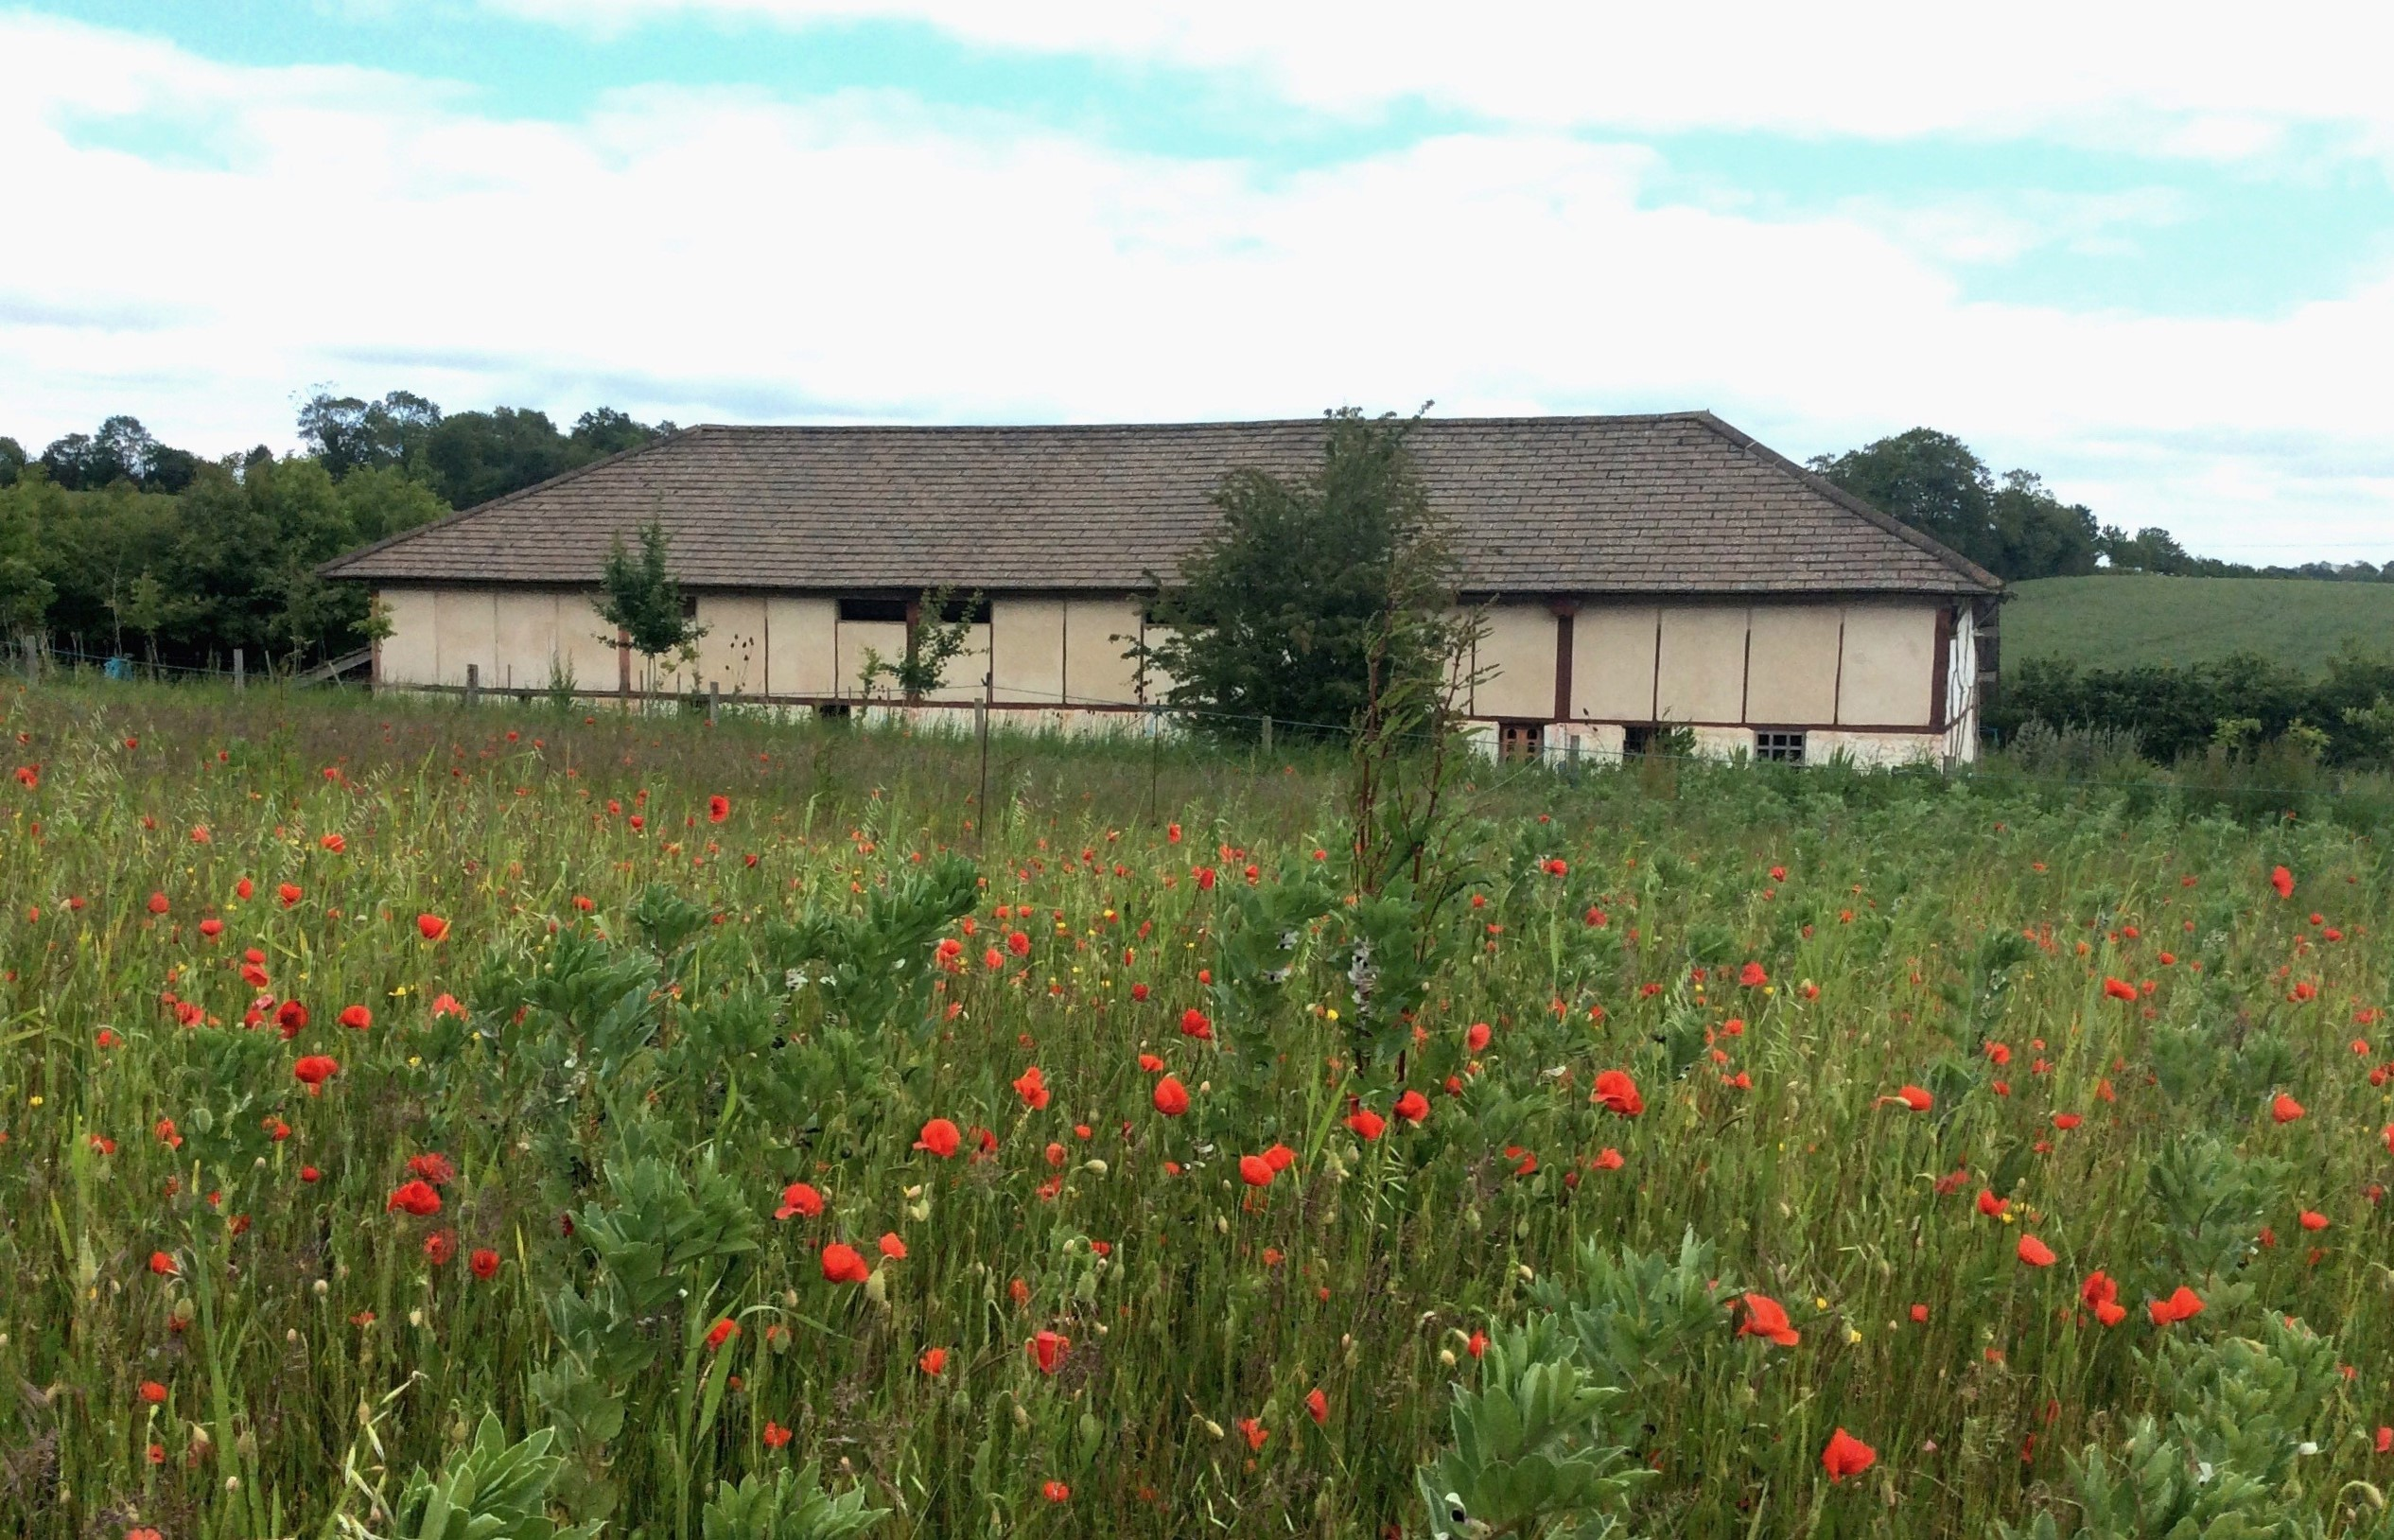 villa with poppies